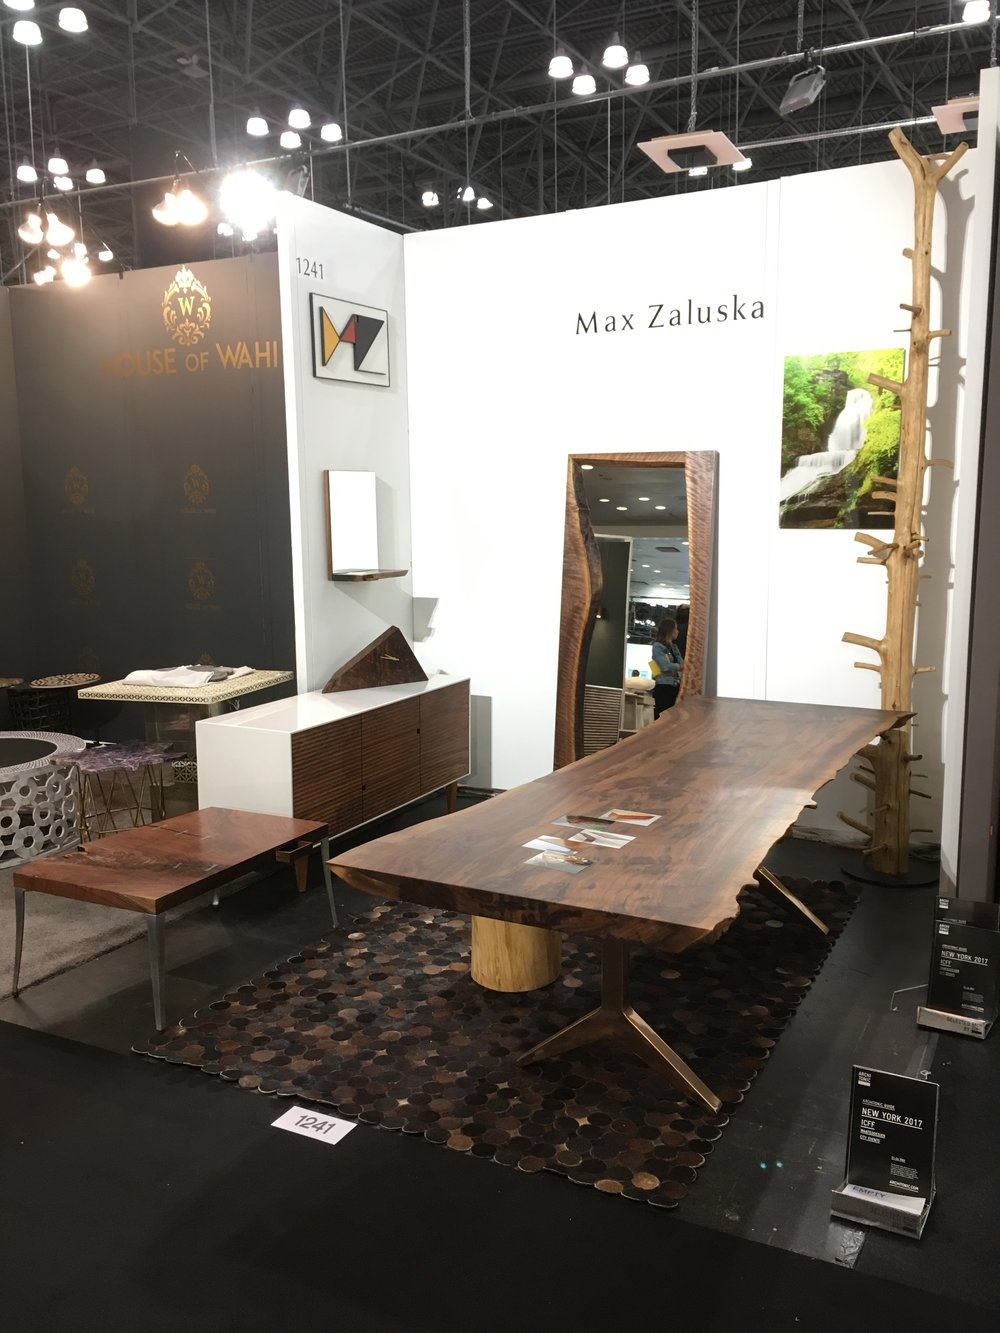 International Contemporary Furniture Fair 2017 (ICFF)